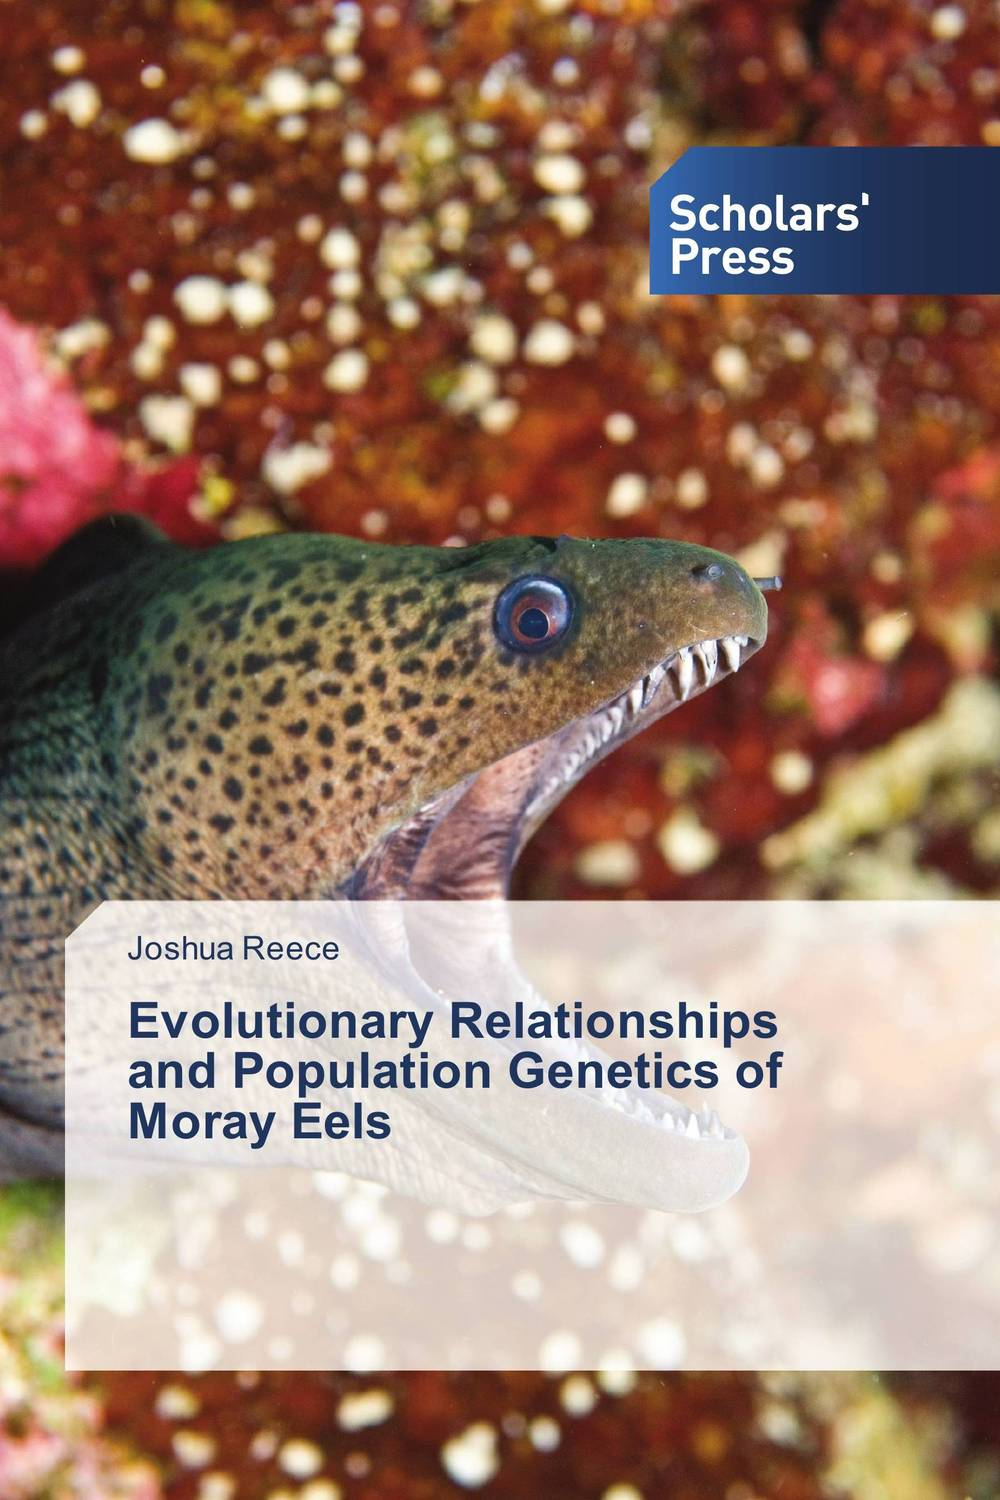 Evolutionary Relationships and Population Genetics of Moray Eels climatology and biogeography